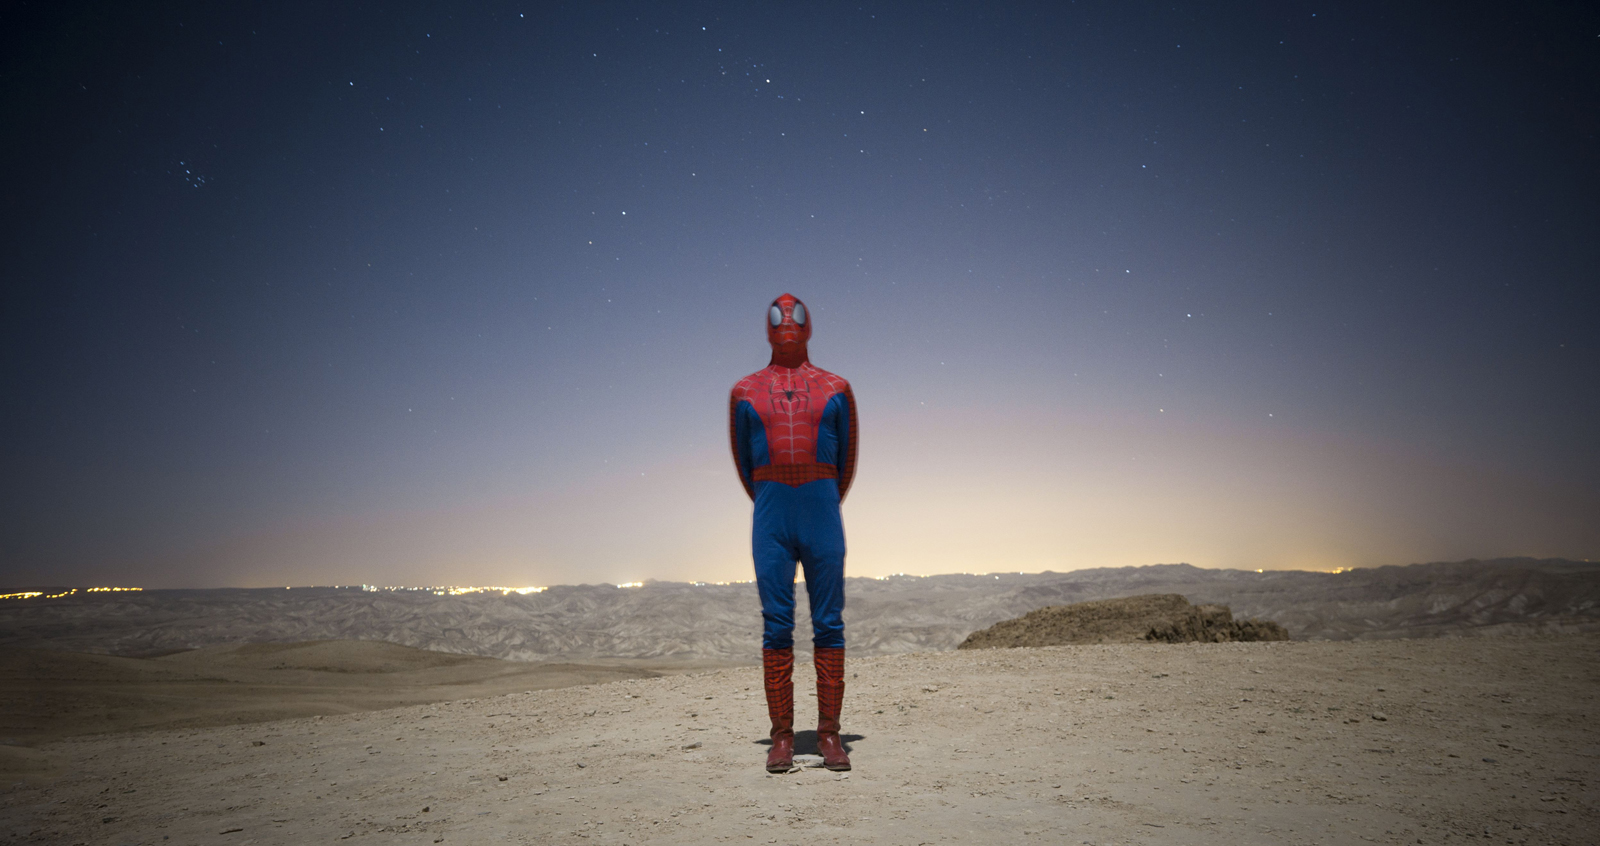 Spiderman_Desert_MASTER-small